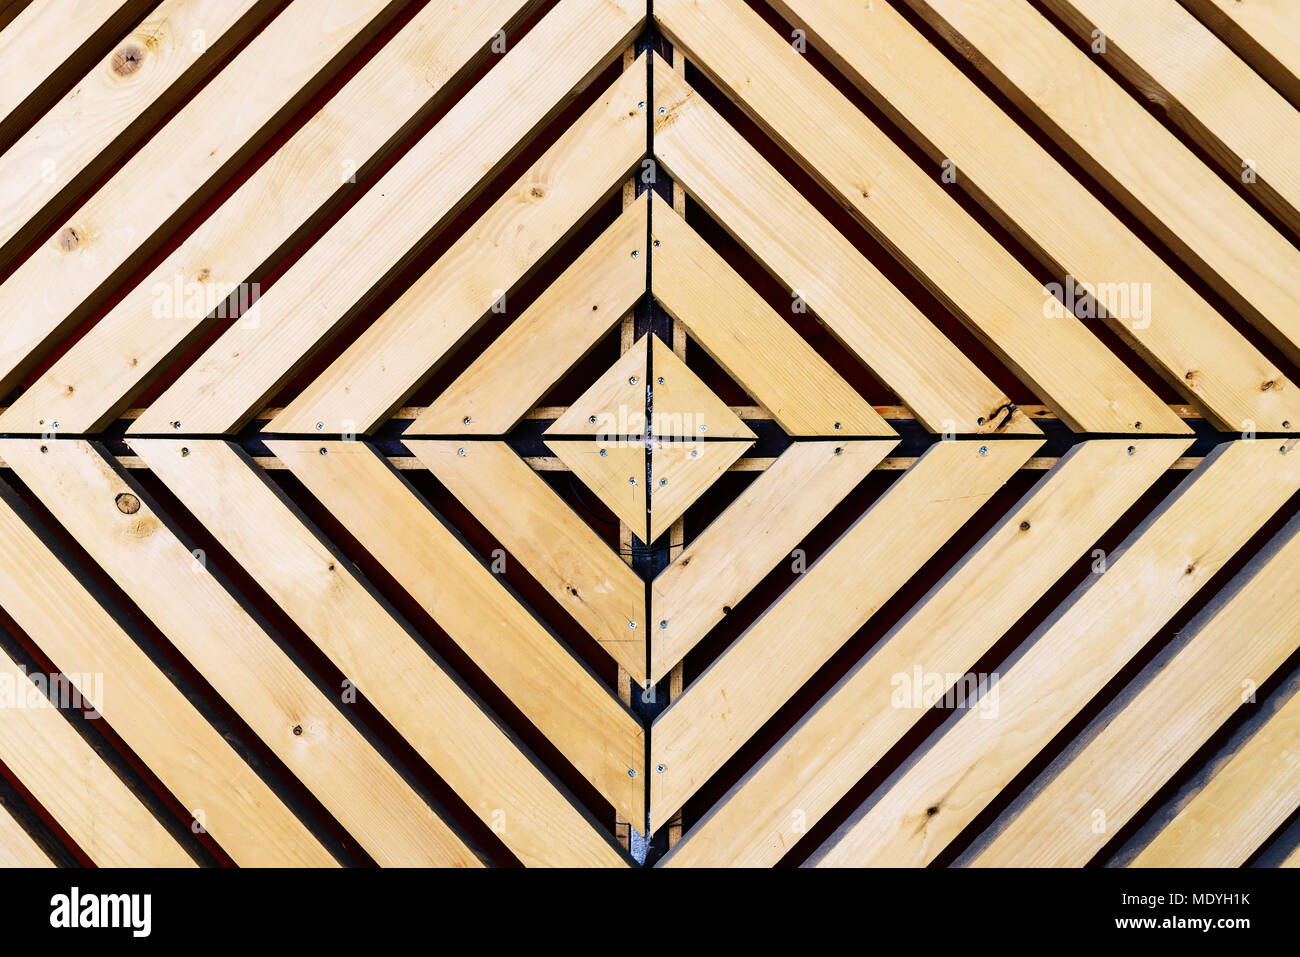 Diamond Wood Pattern Stock Photos & Diamond Wood Pattern Stock ...